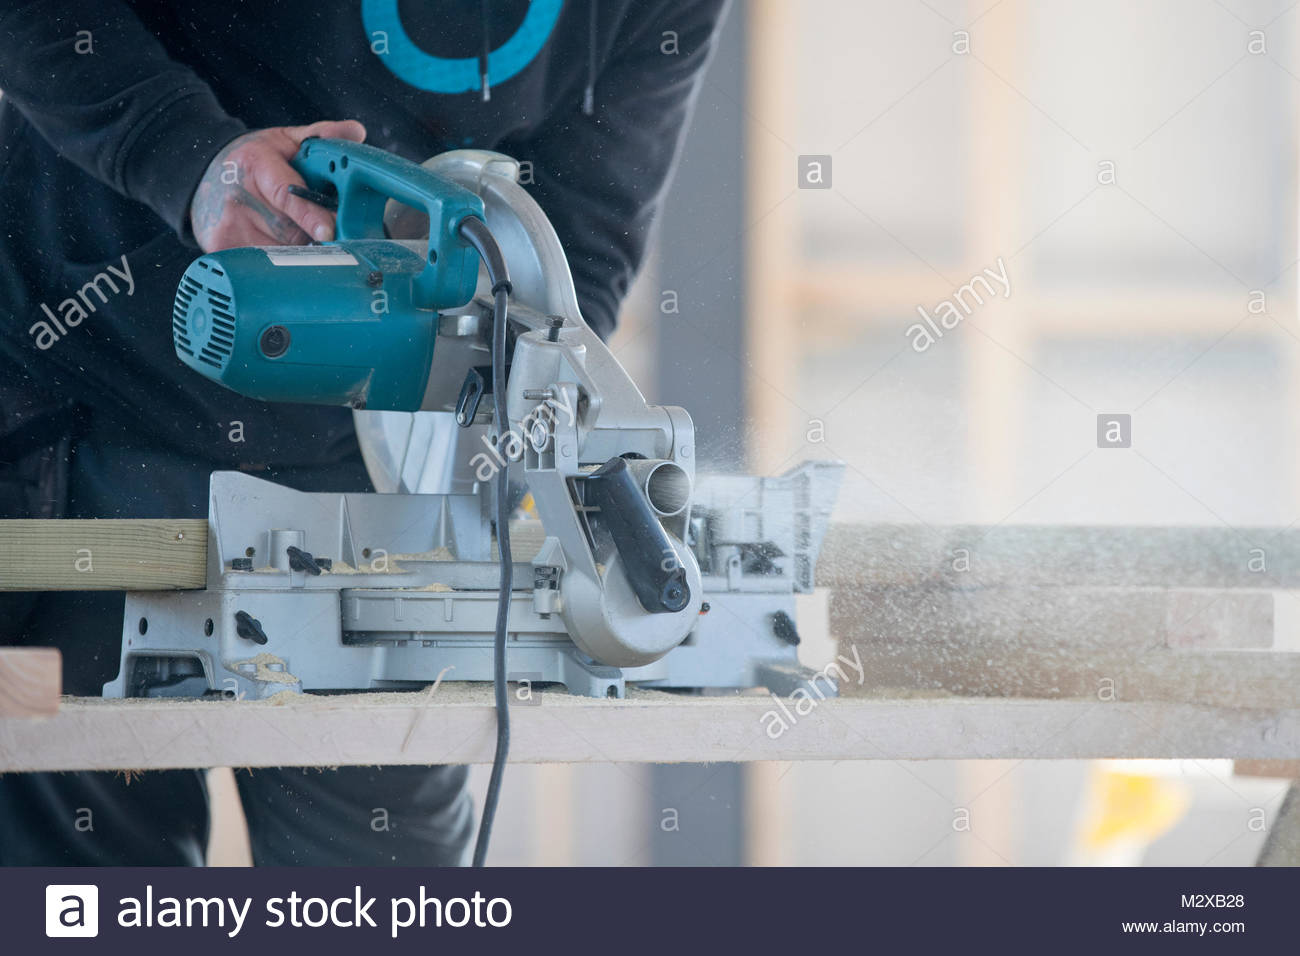 Carpenter using circular power saw tool to cut wood in construction site interior - Stock Image